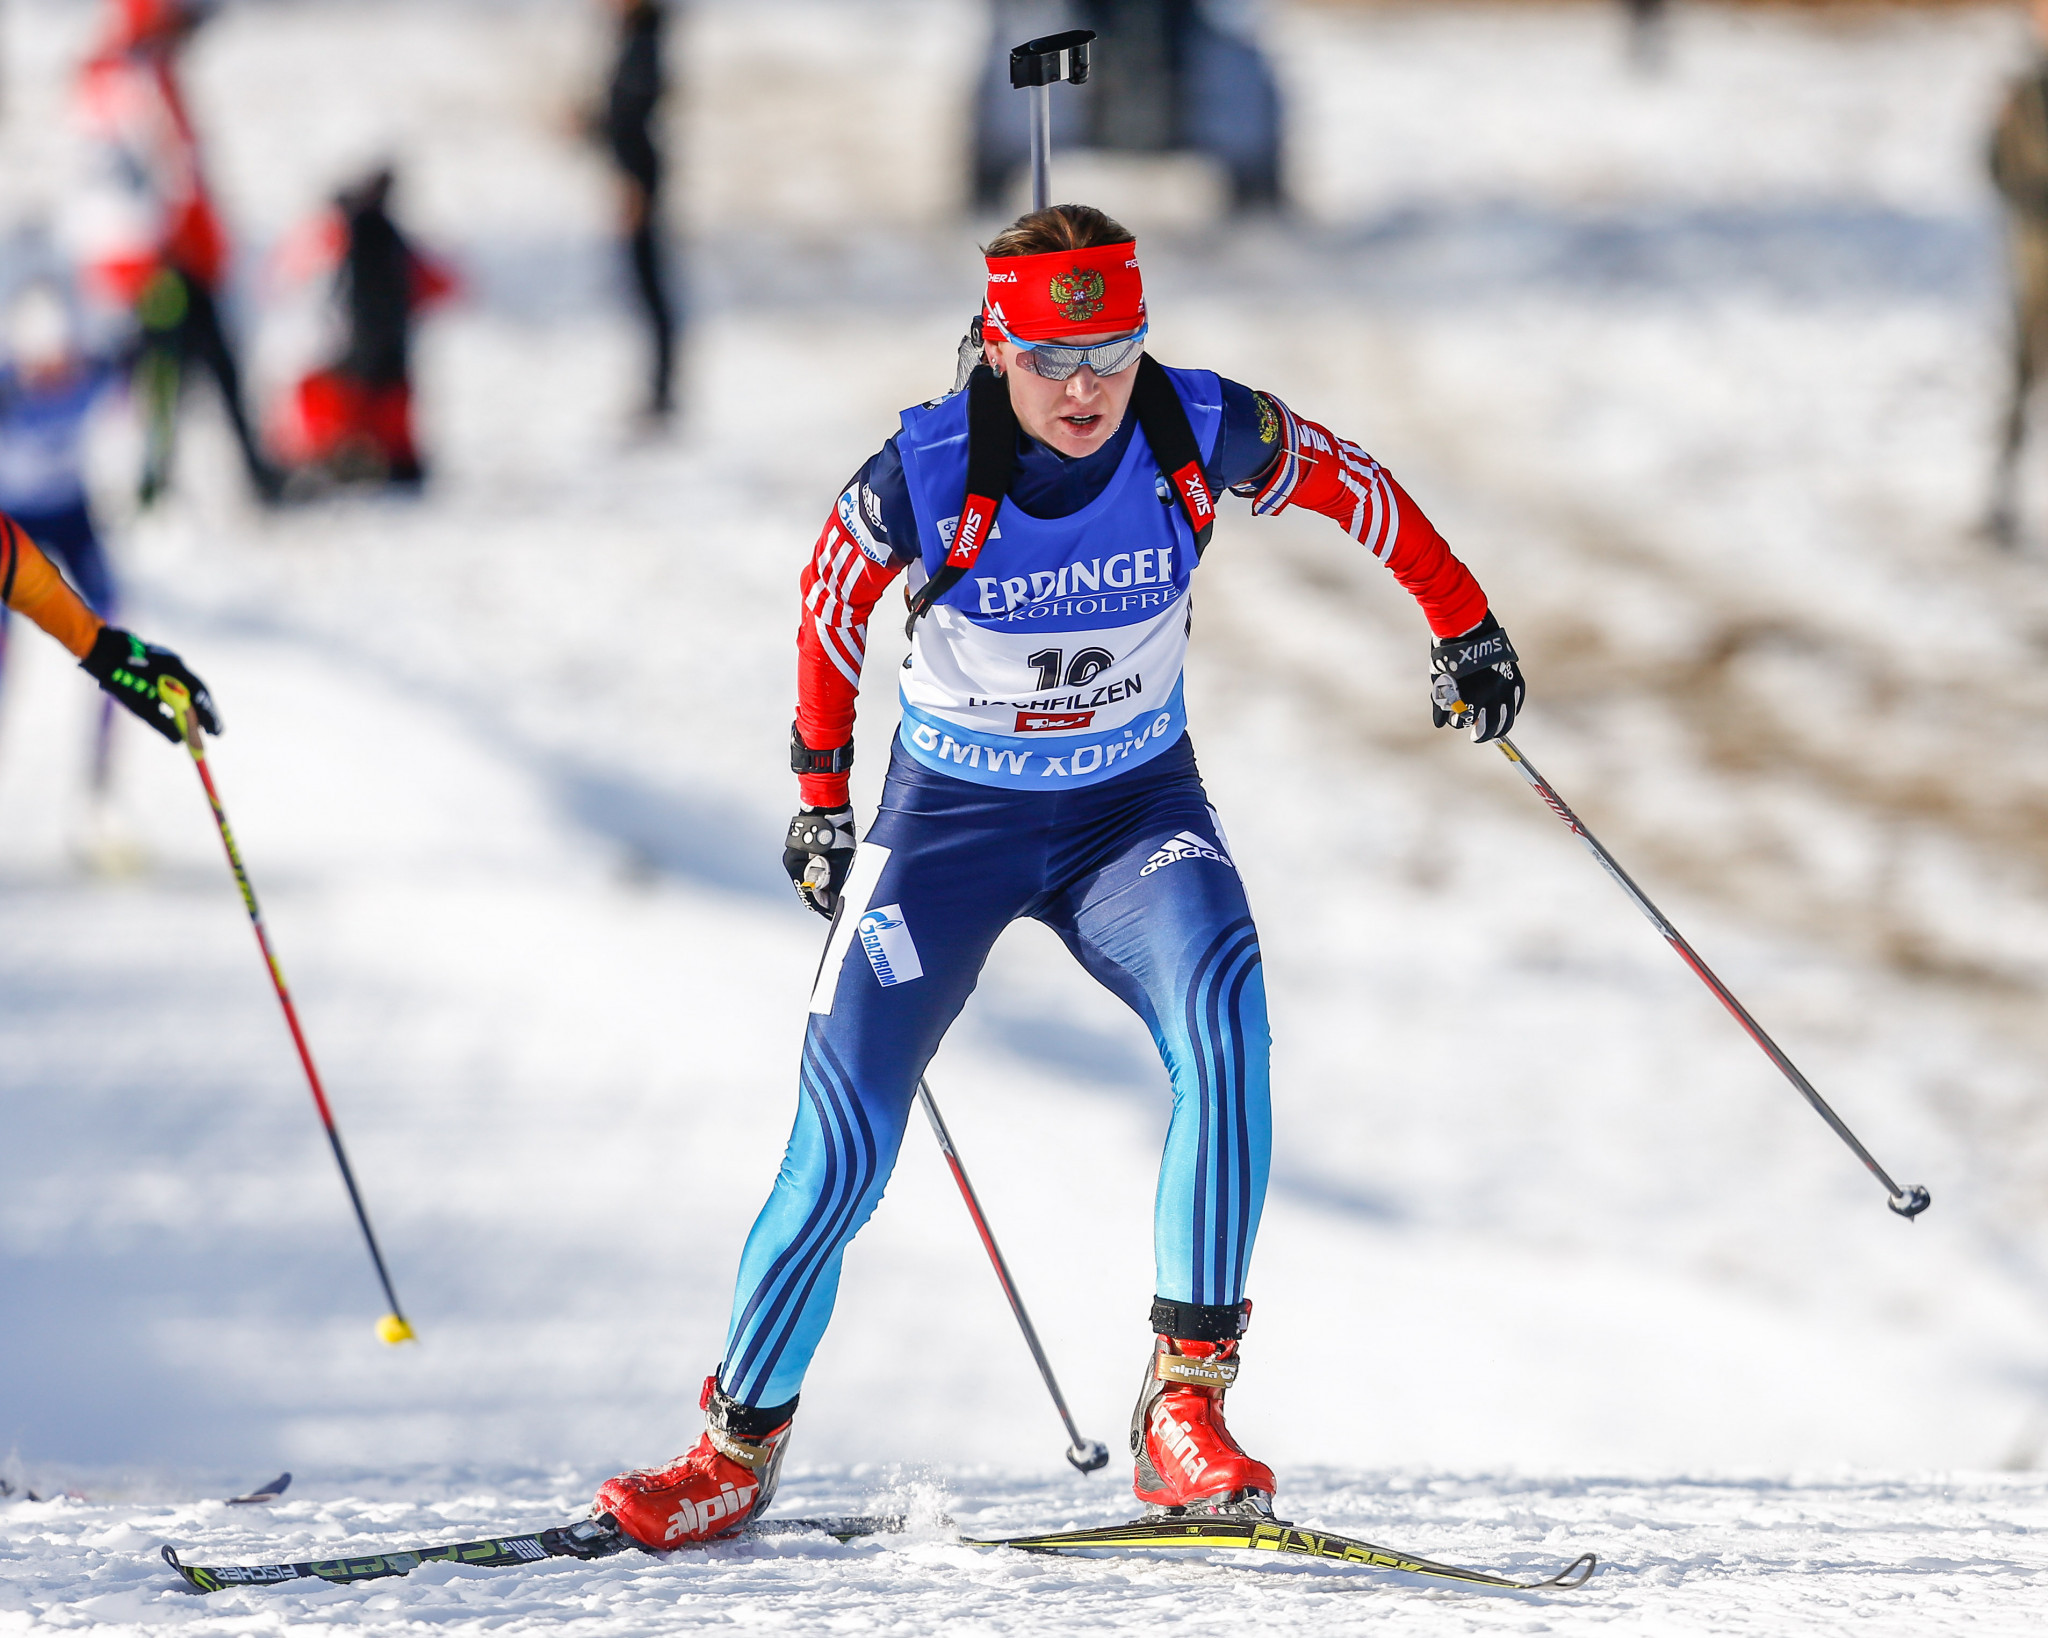 Biathlete banned following McLaren Report evidence withdraws appeal